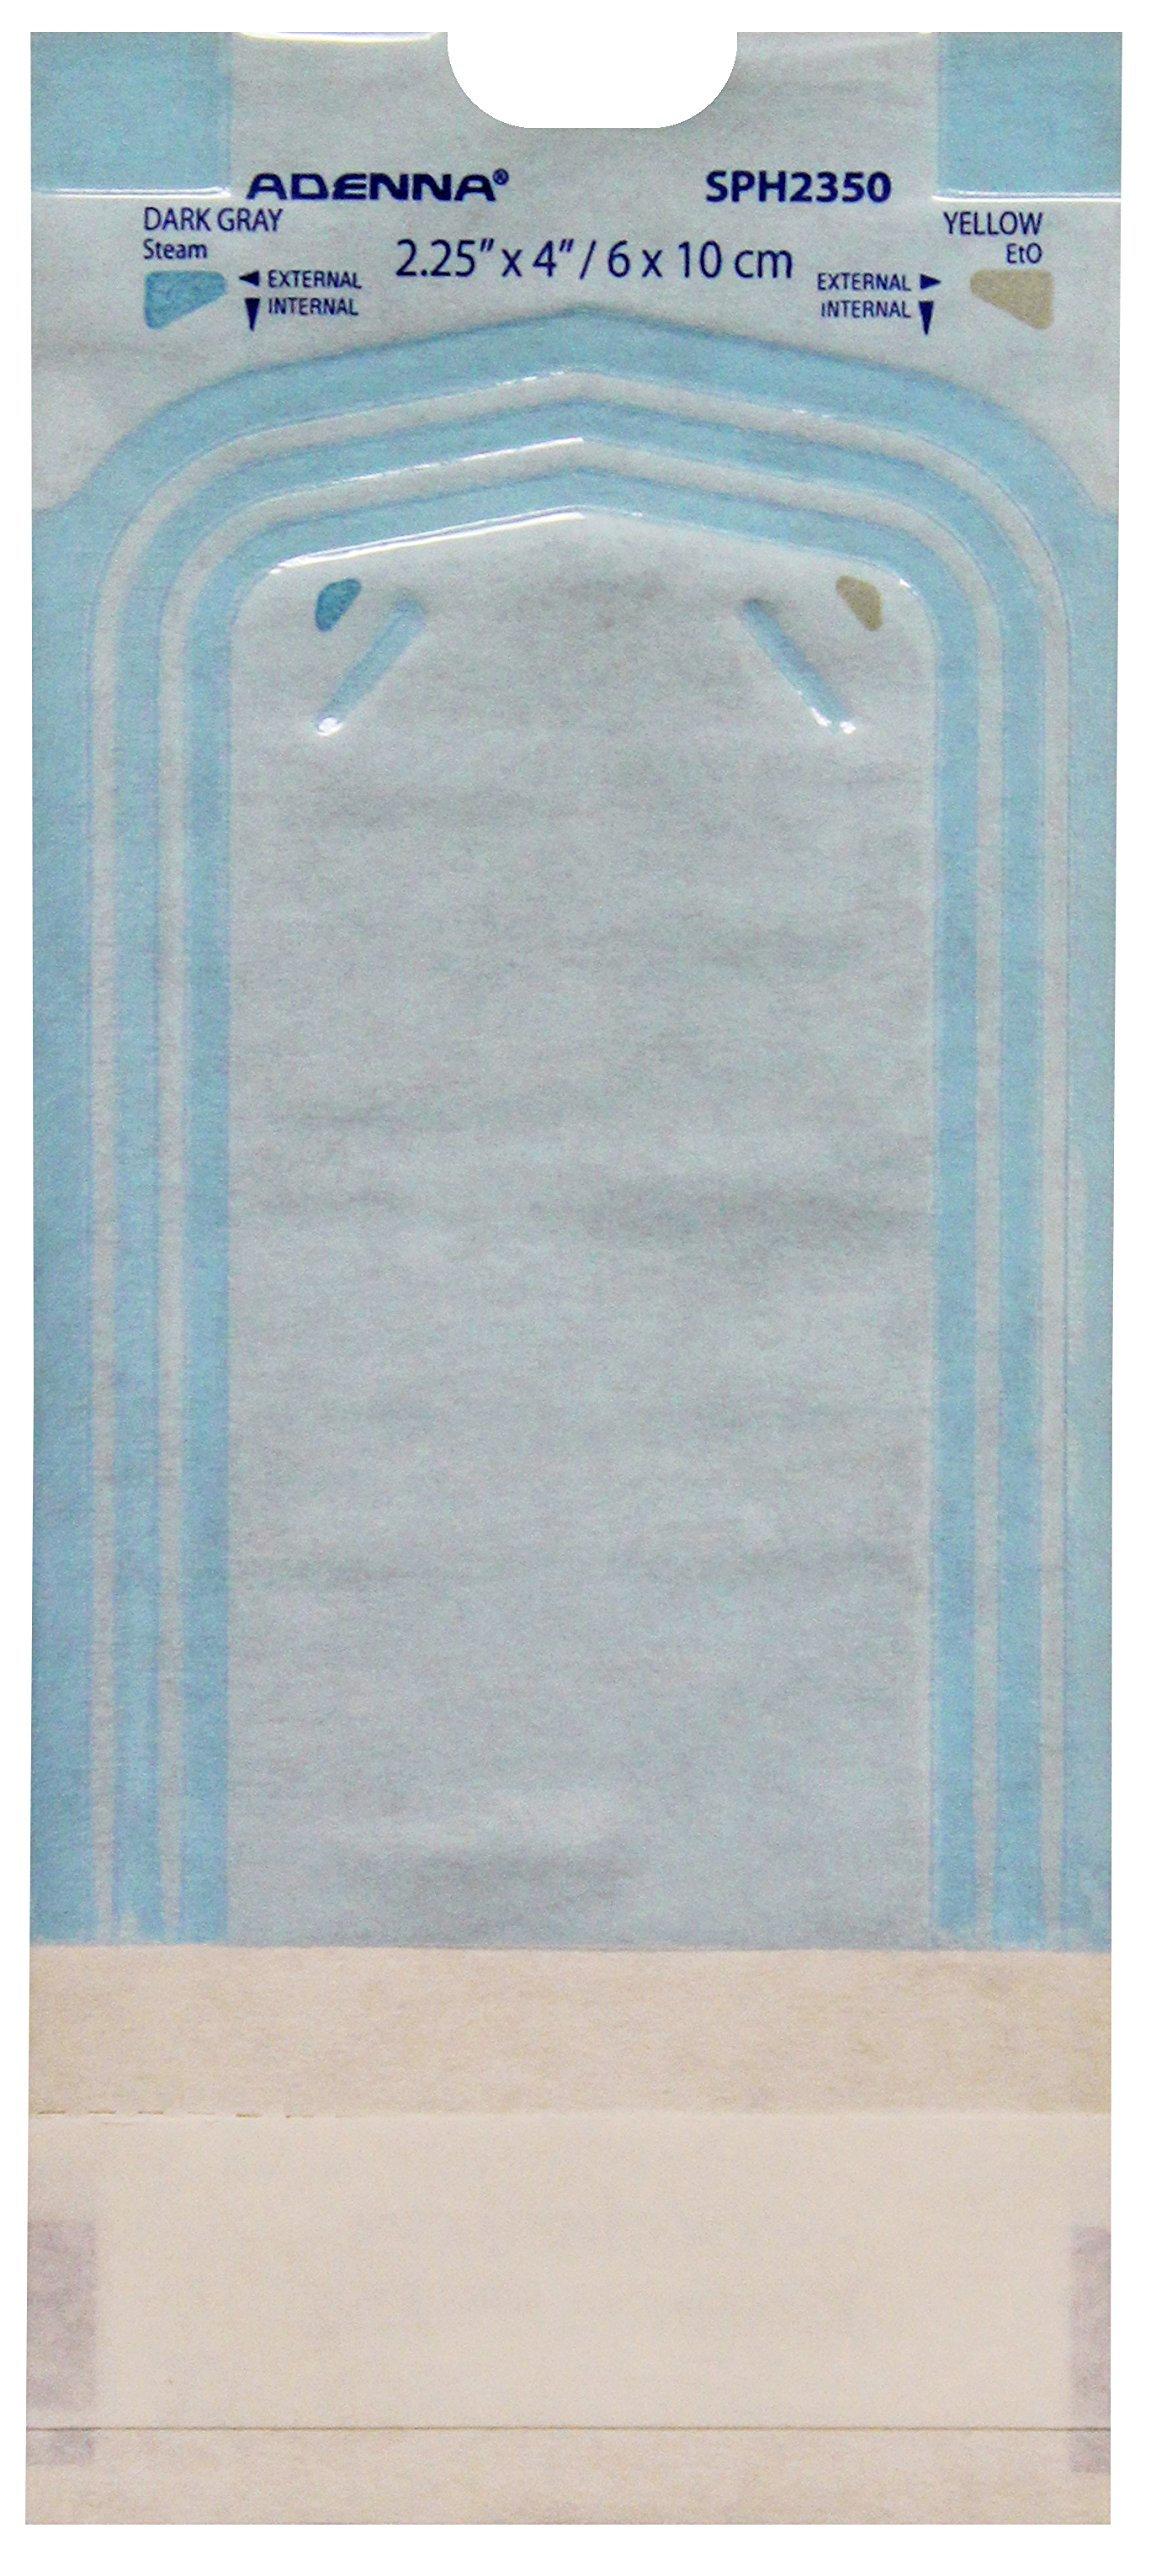 Adenna White Paper/Blue Tinted Film 2-1/4'' X 4'' Sterilization Pouch (Box of 200)